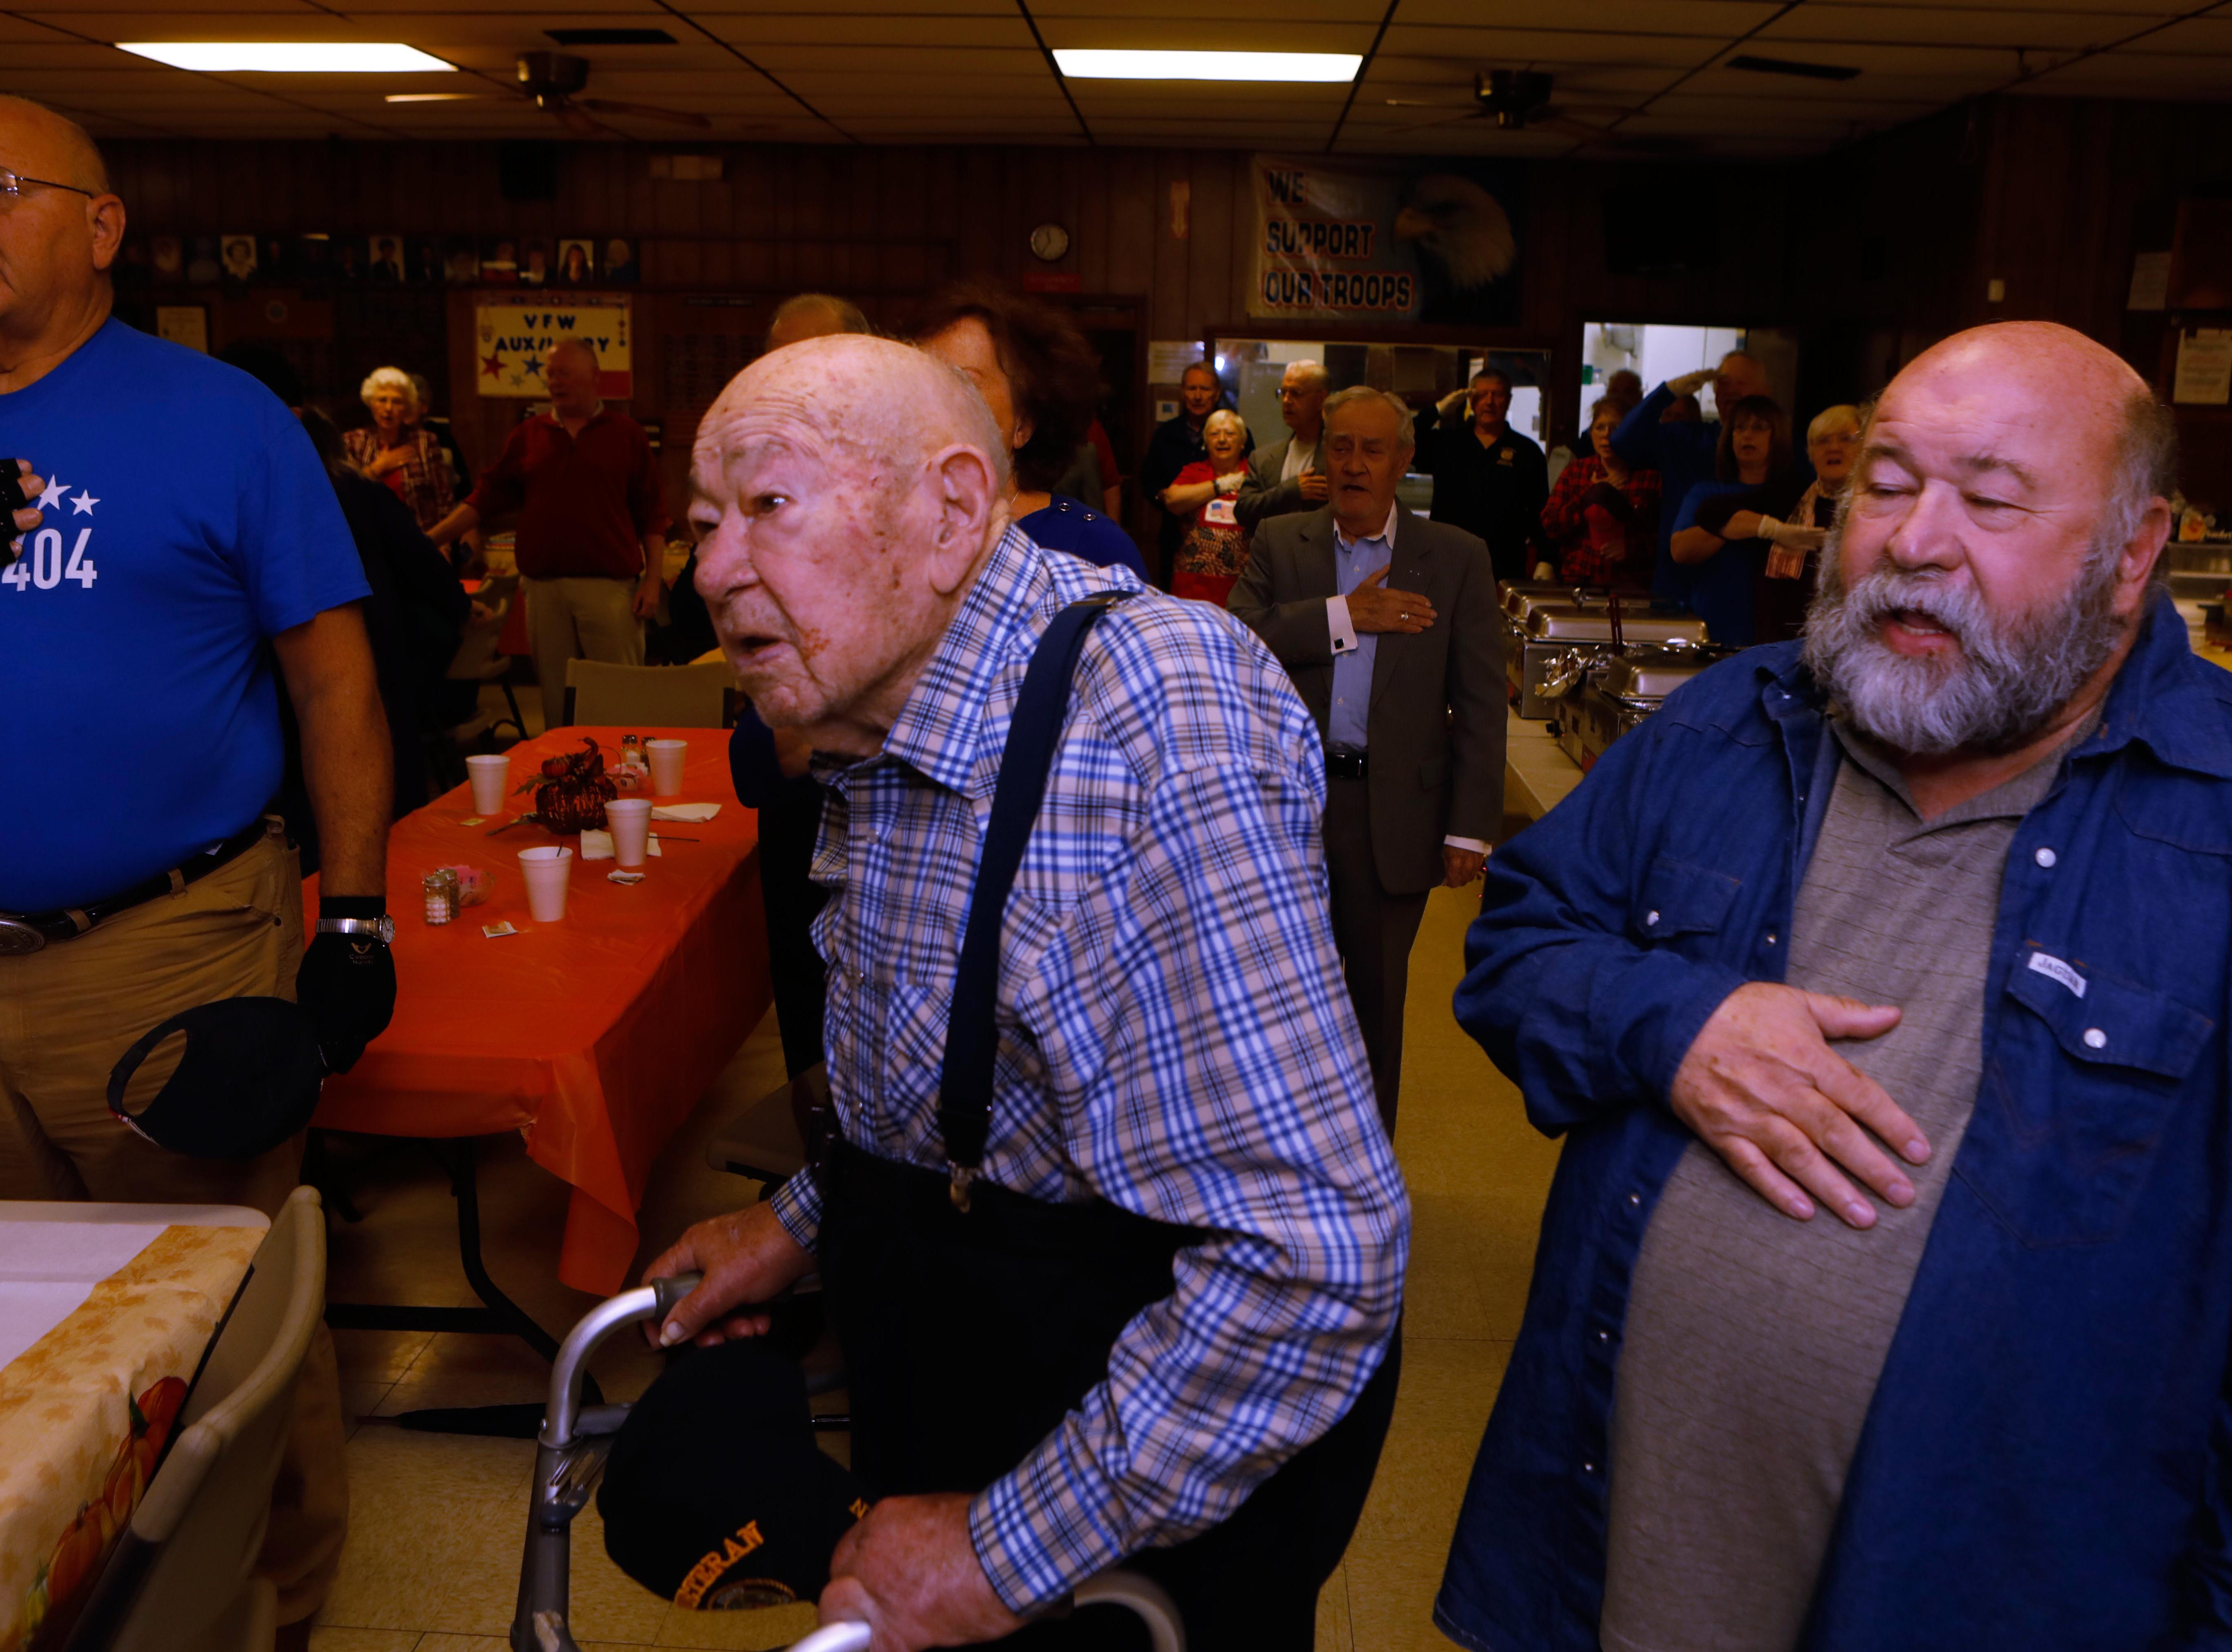 Vincent Plaster, left, and son Edward Plaster say the Pledge of Allegiance at VFW Post 3404's annual Thanksgiving dinner Sunday, Nov. 18, 2018, where Vince Plaster was the special guest in honor of his 100th birthday,